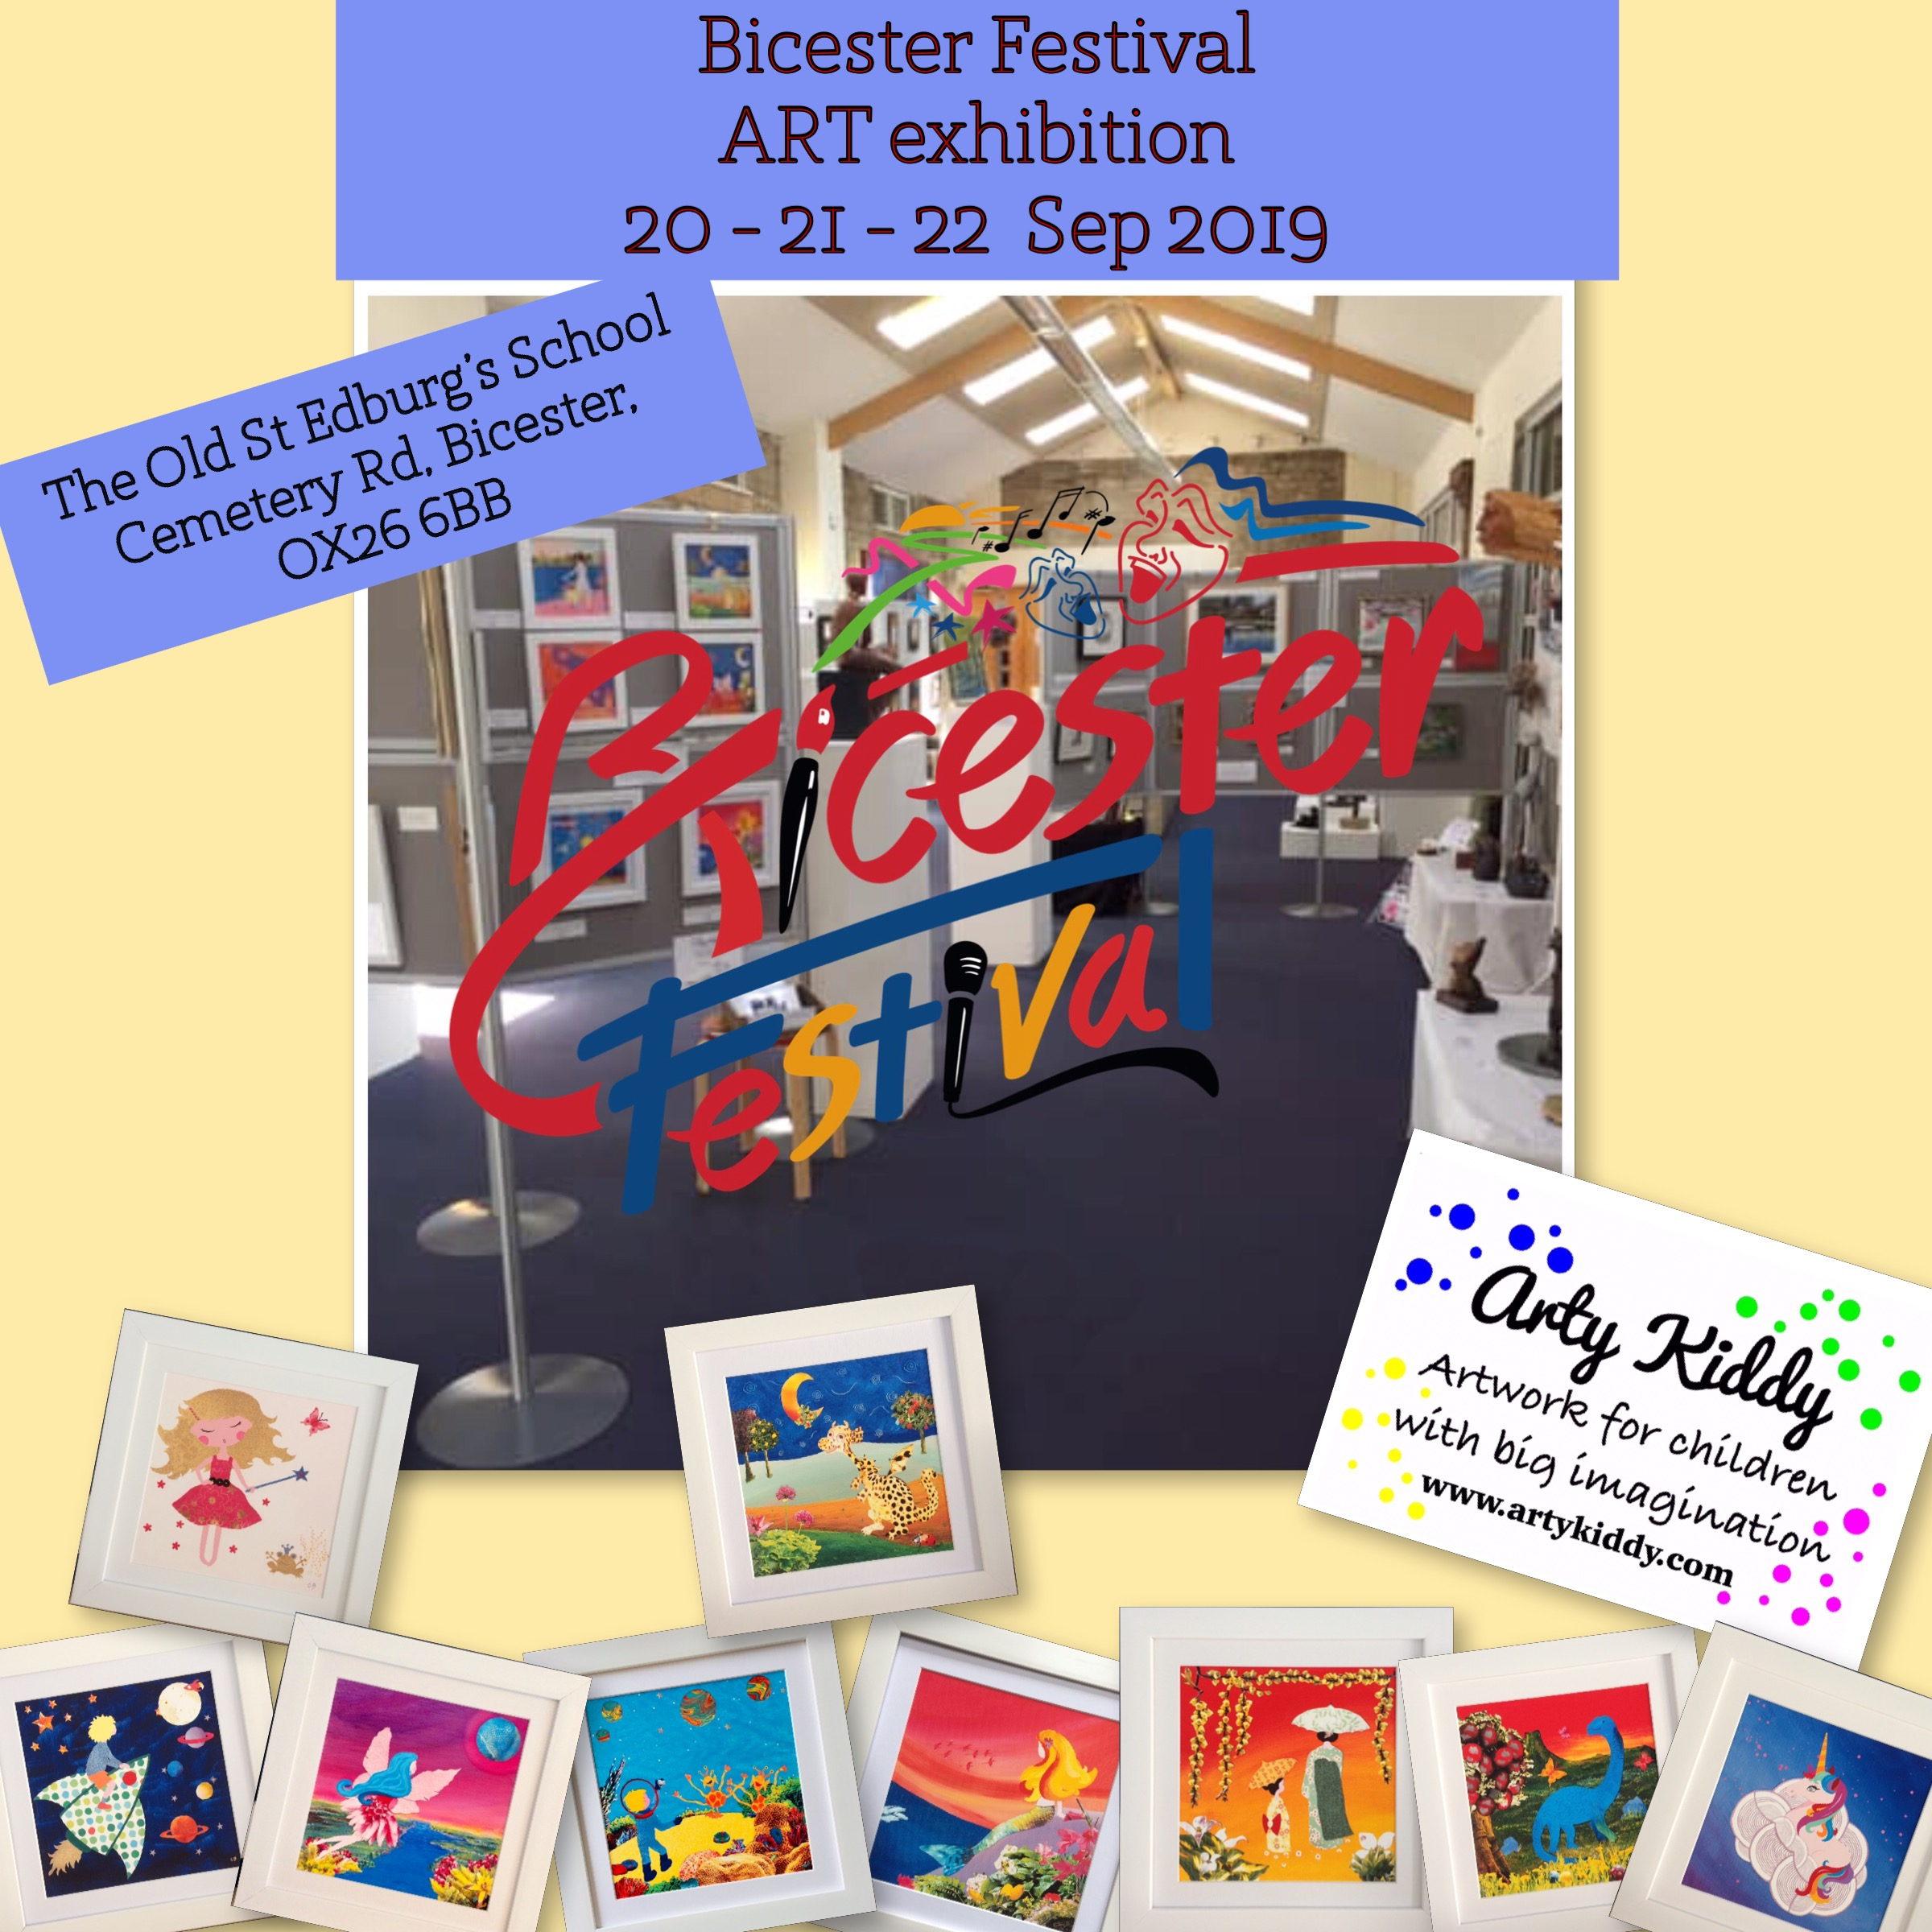 Bicester Festival - Art Exhibition 20-21-22 September 2019